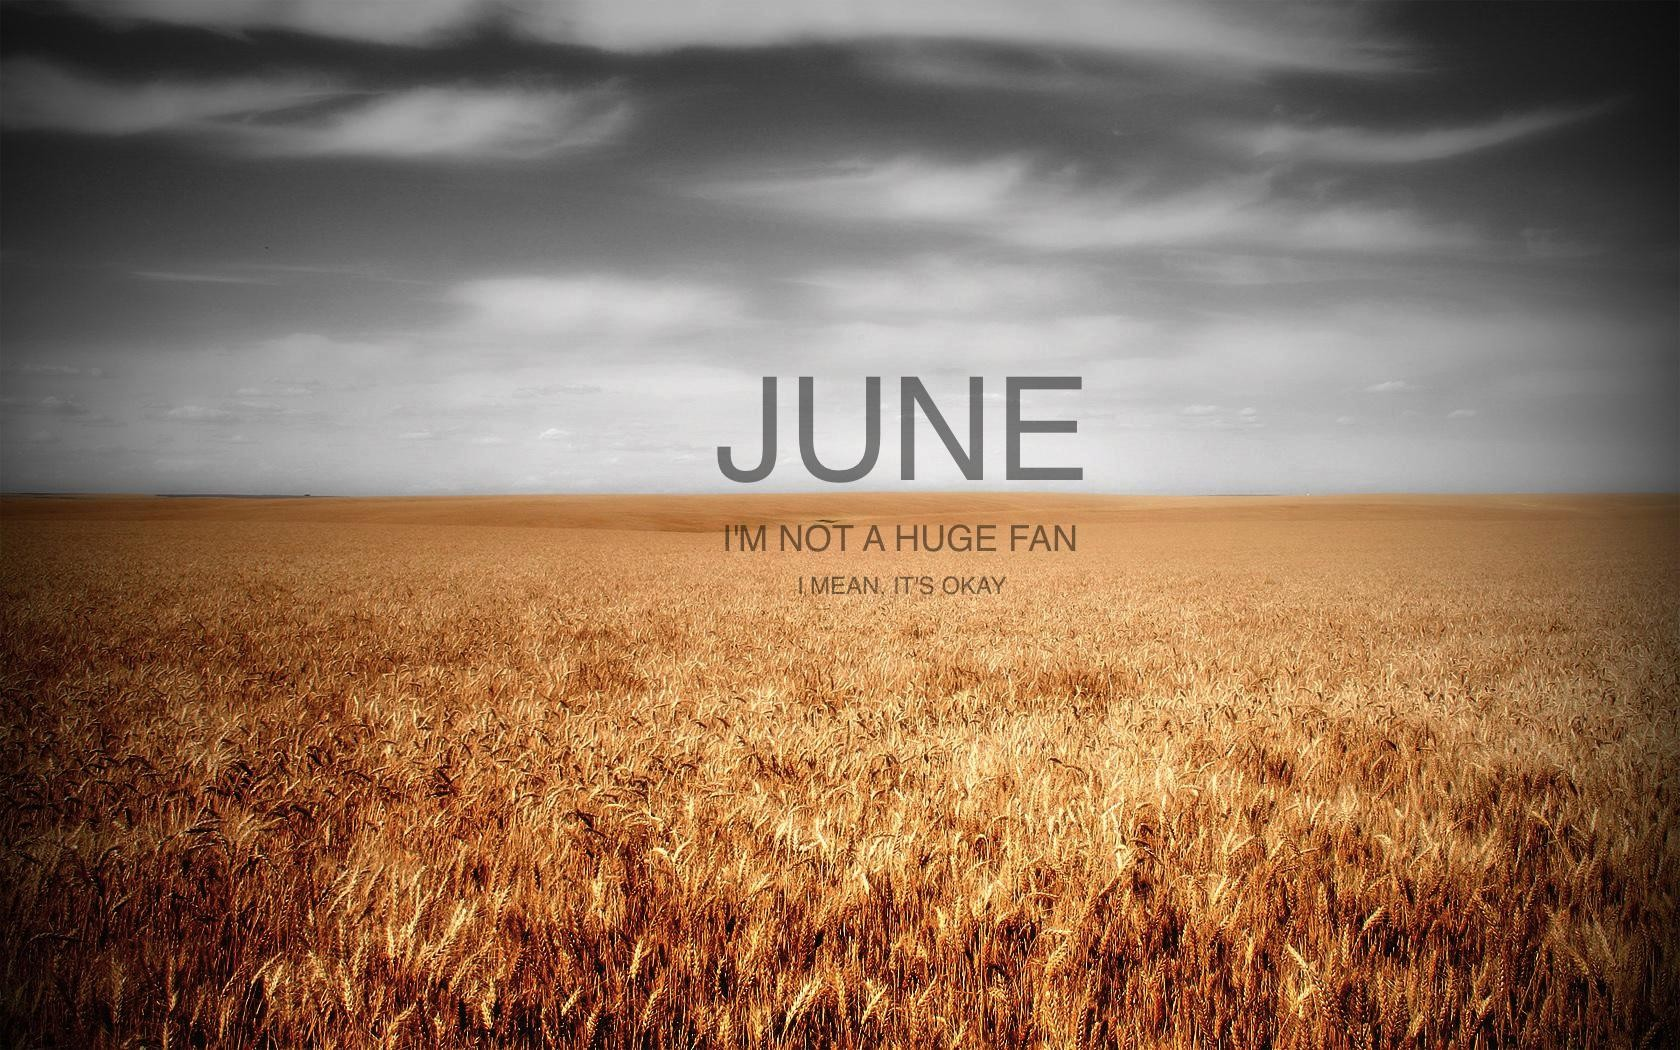 Inspiring June Wallpaper Designs For Your iPhone Or Android